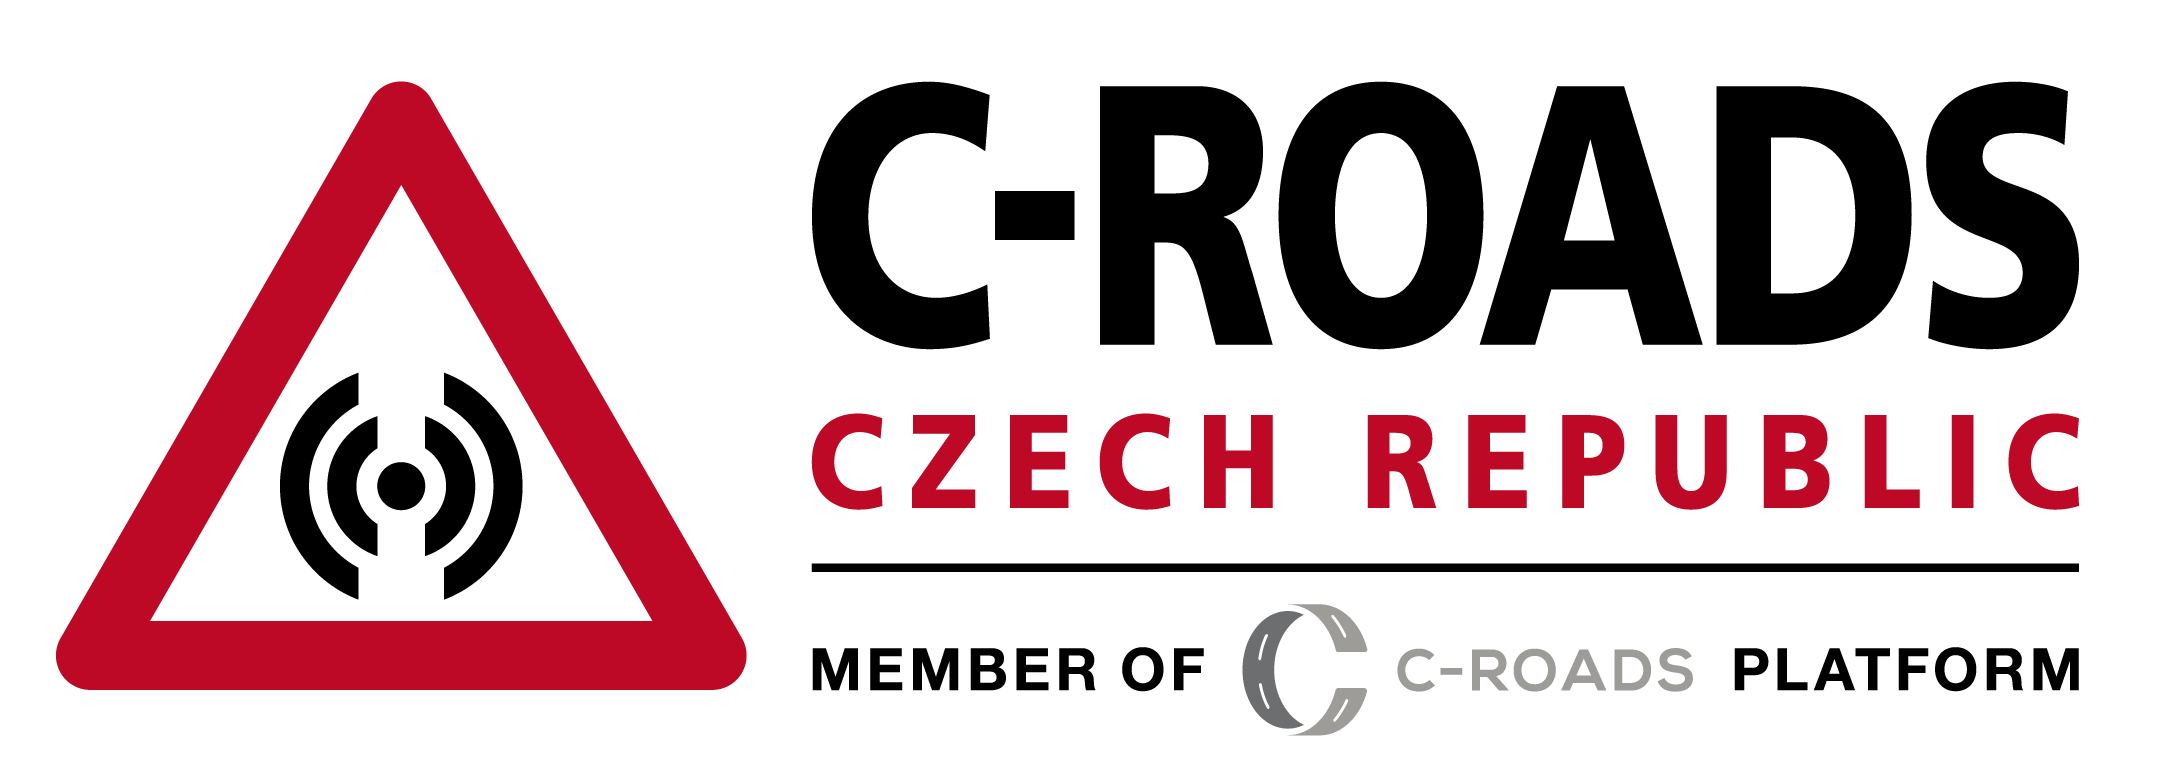 MDCR_logo_C-roads_CZ_SMALL_color.jpg